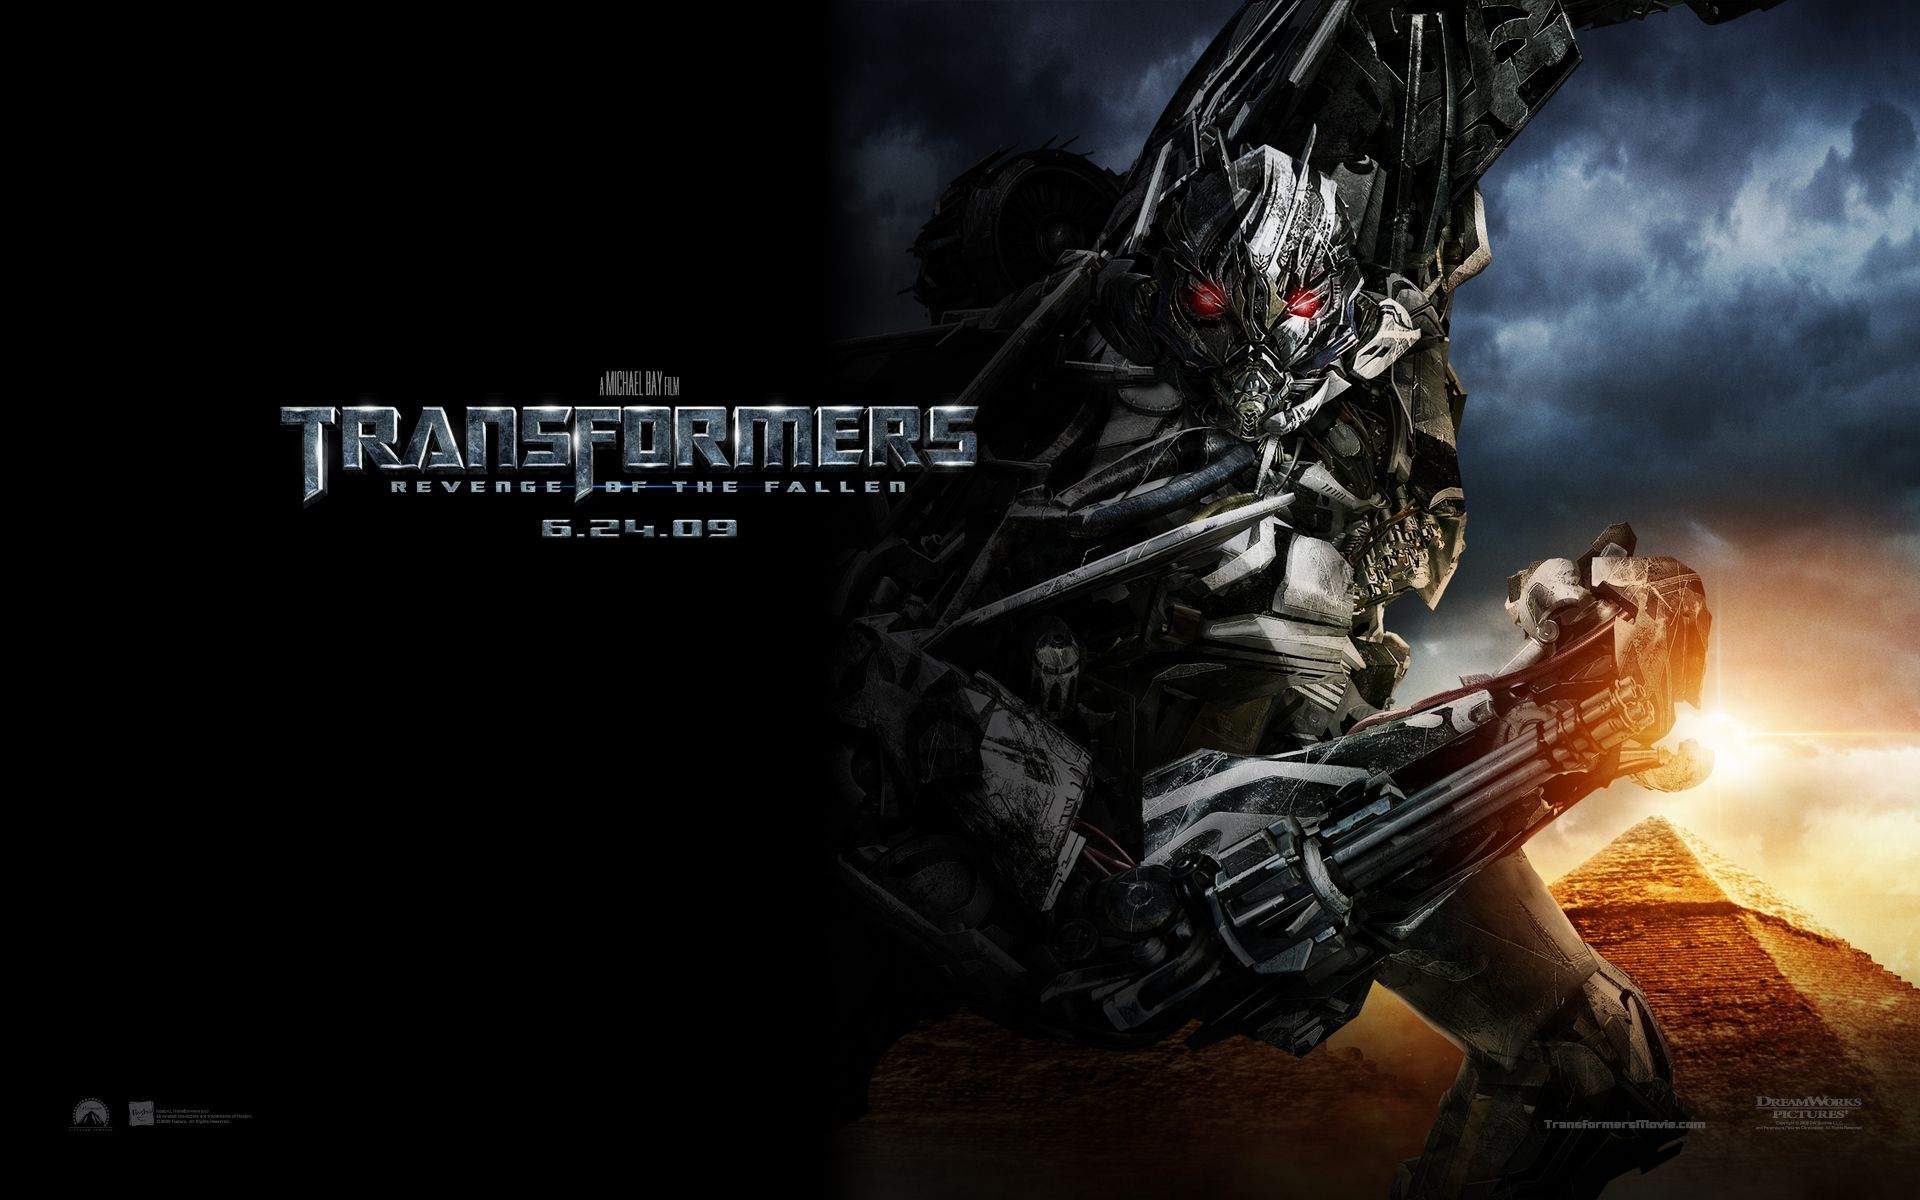 Hd Wallpapers Widescreen 1080p 3d Transformers 2